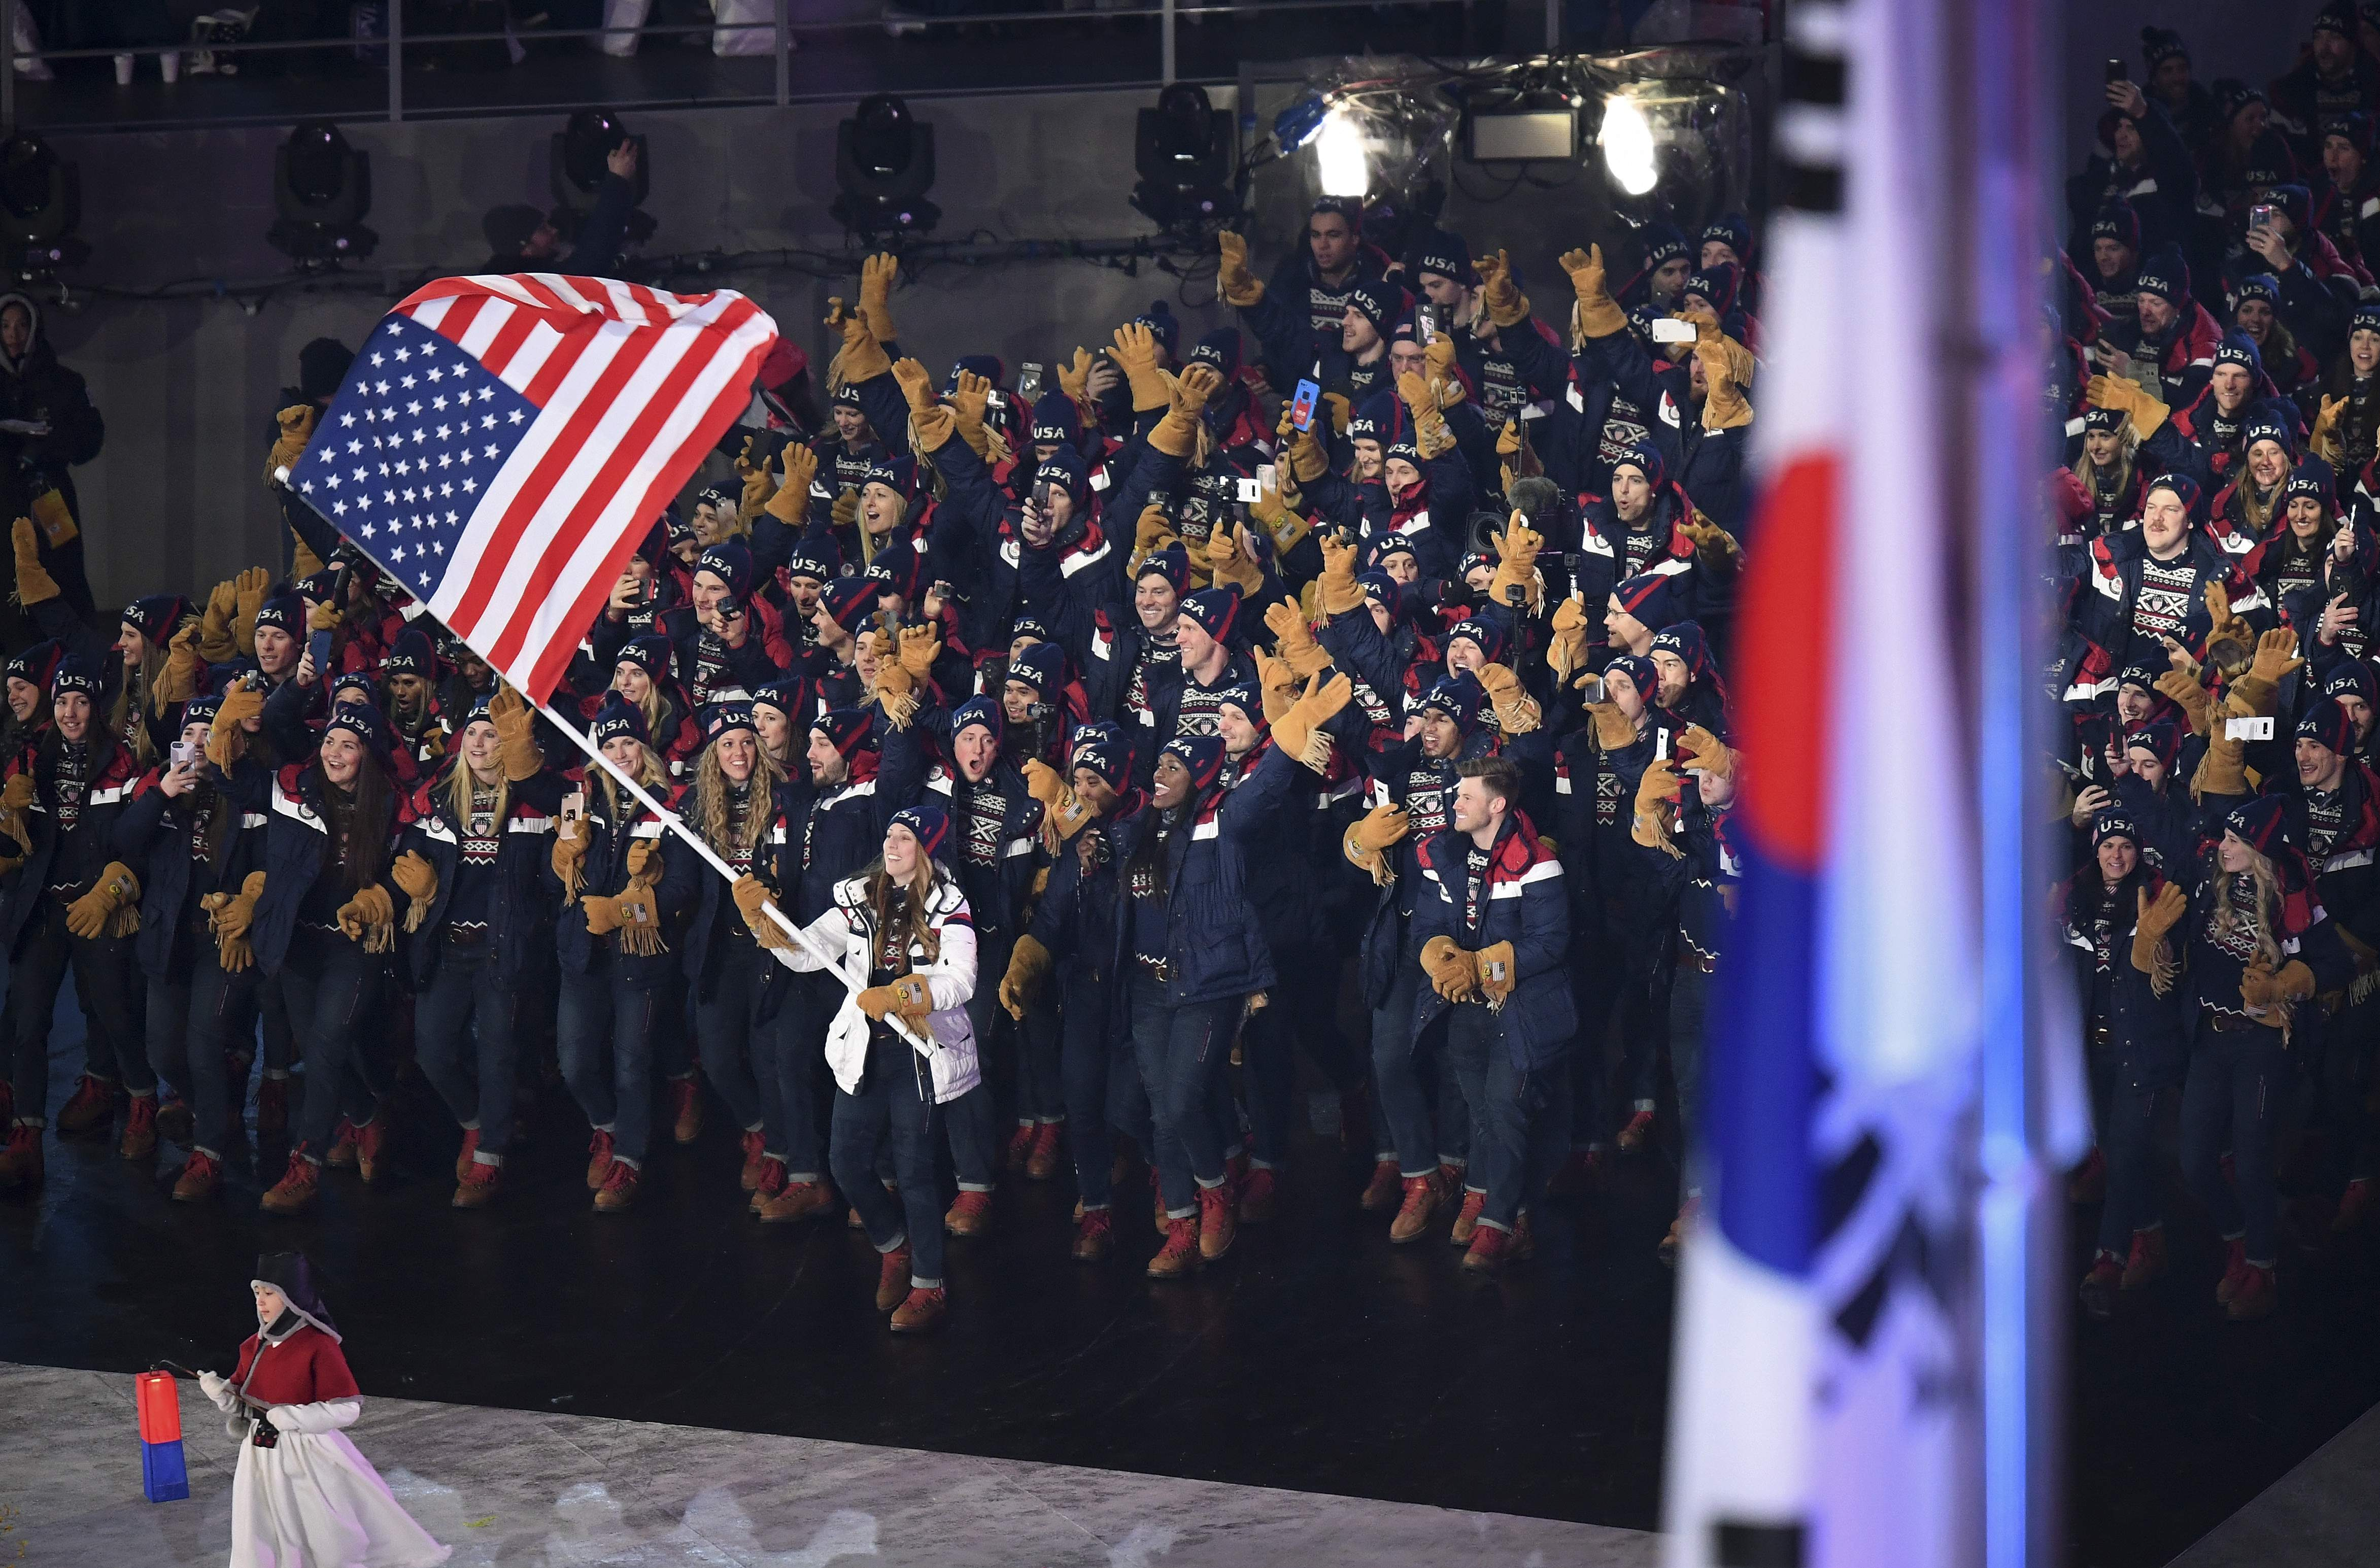 Athletes of the United States arrive during the opening ceremony of the 2018 Winter Olympics in Pyeongchang, South Korea, Friday, Feb. 9, 2018. (Franck Fife/Pool Photo via AP)